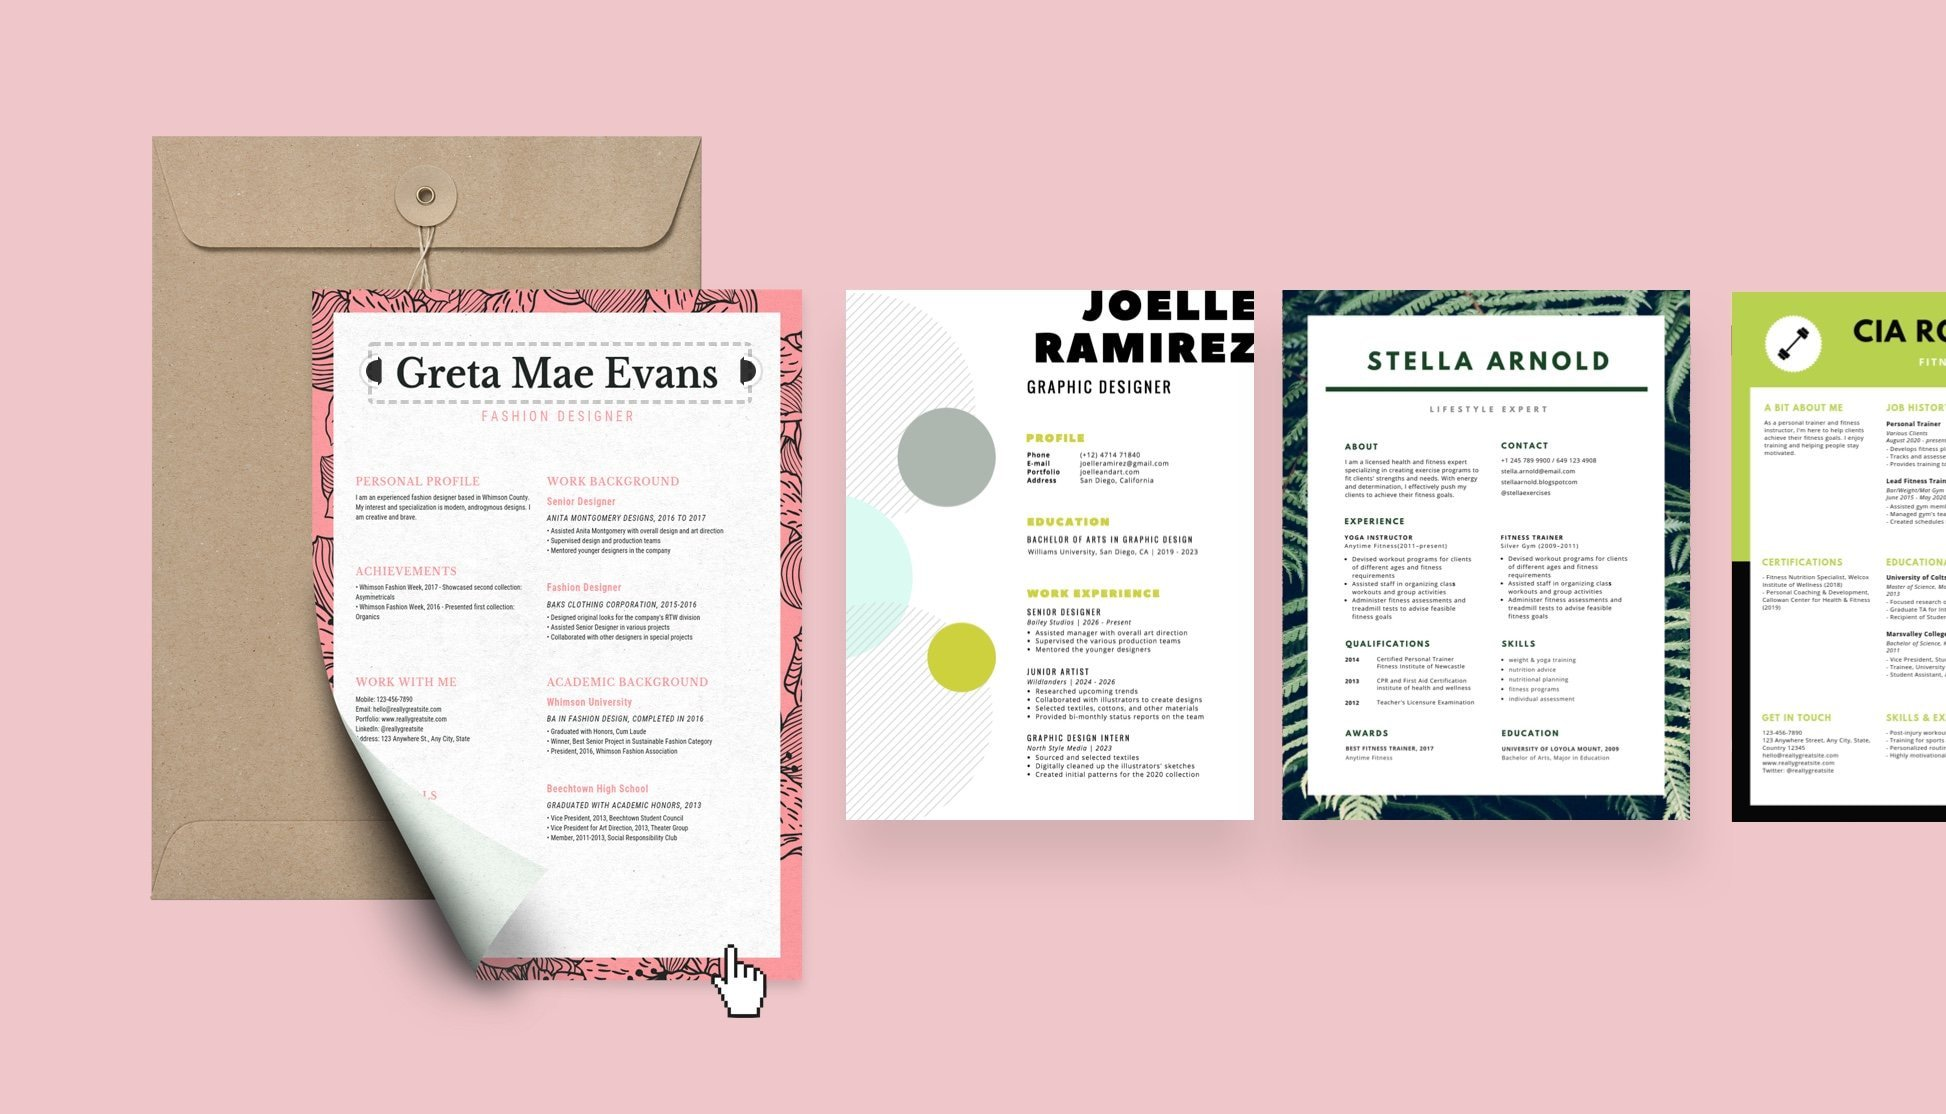 free resume builder design custom in canva make on phone pmo director physical therapy Resume Make Resume On Phone Free